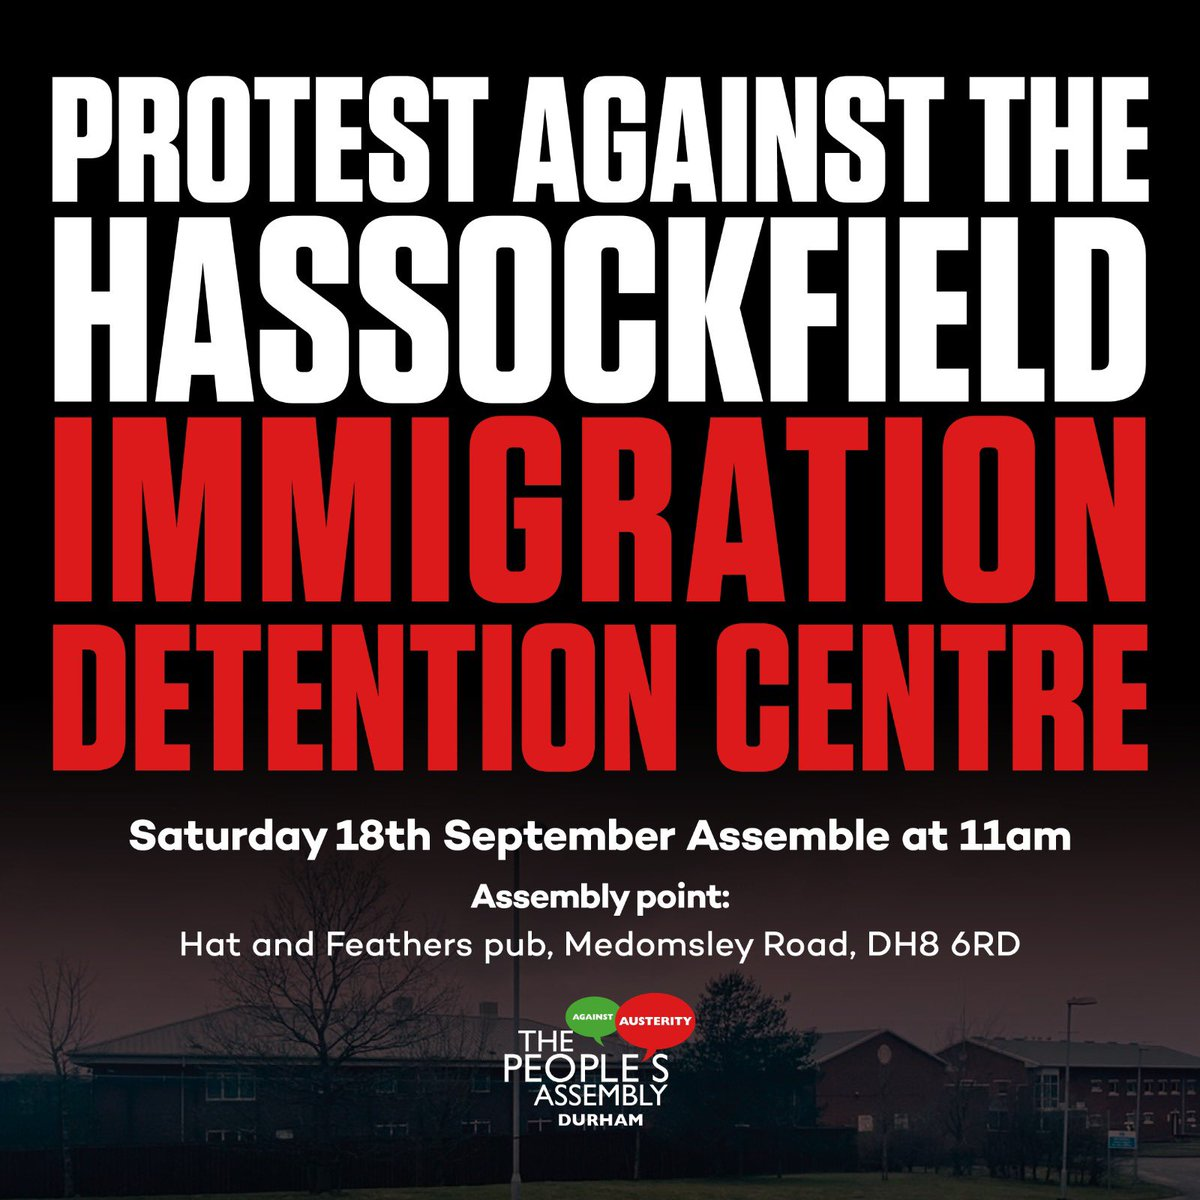 Are you against immigration detention centres? We need your support. This is happening on Saturday 👇🏻